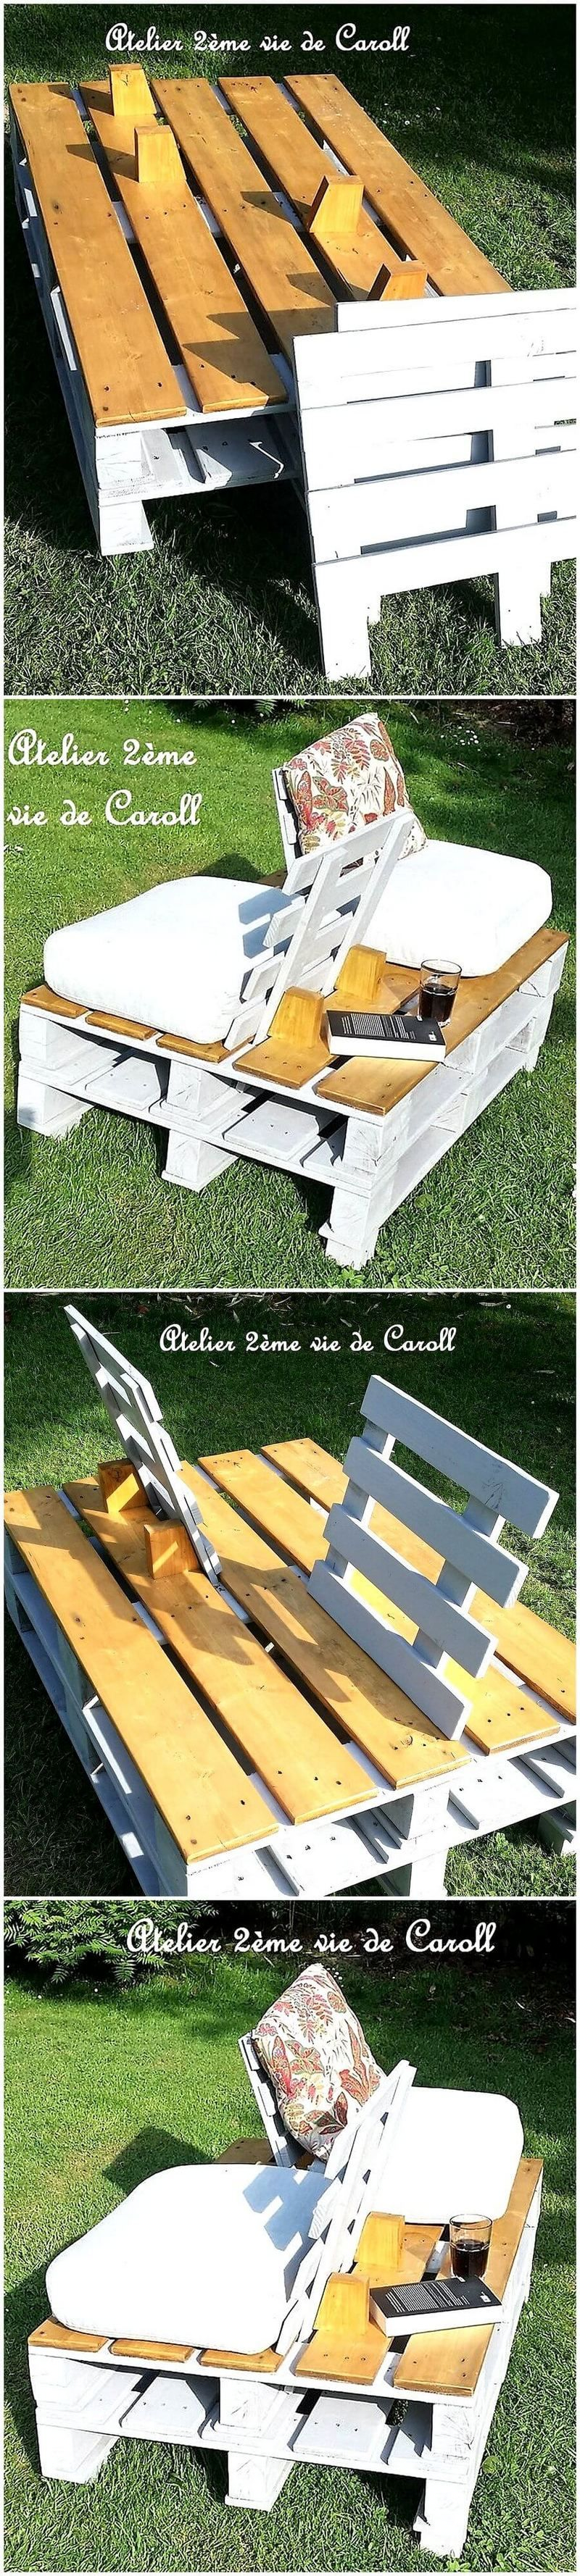 Latest DIY Ideas to Recycle Used Wooden Pallets #oldpalletsforcrafting